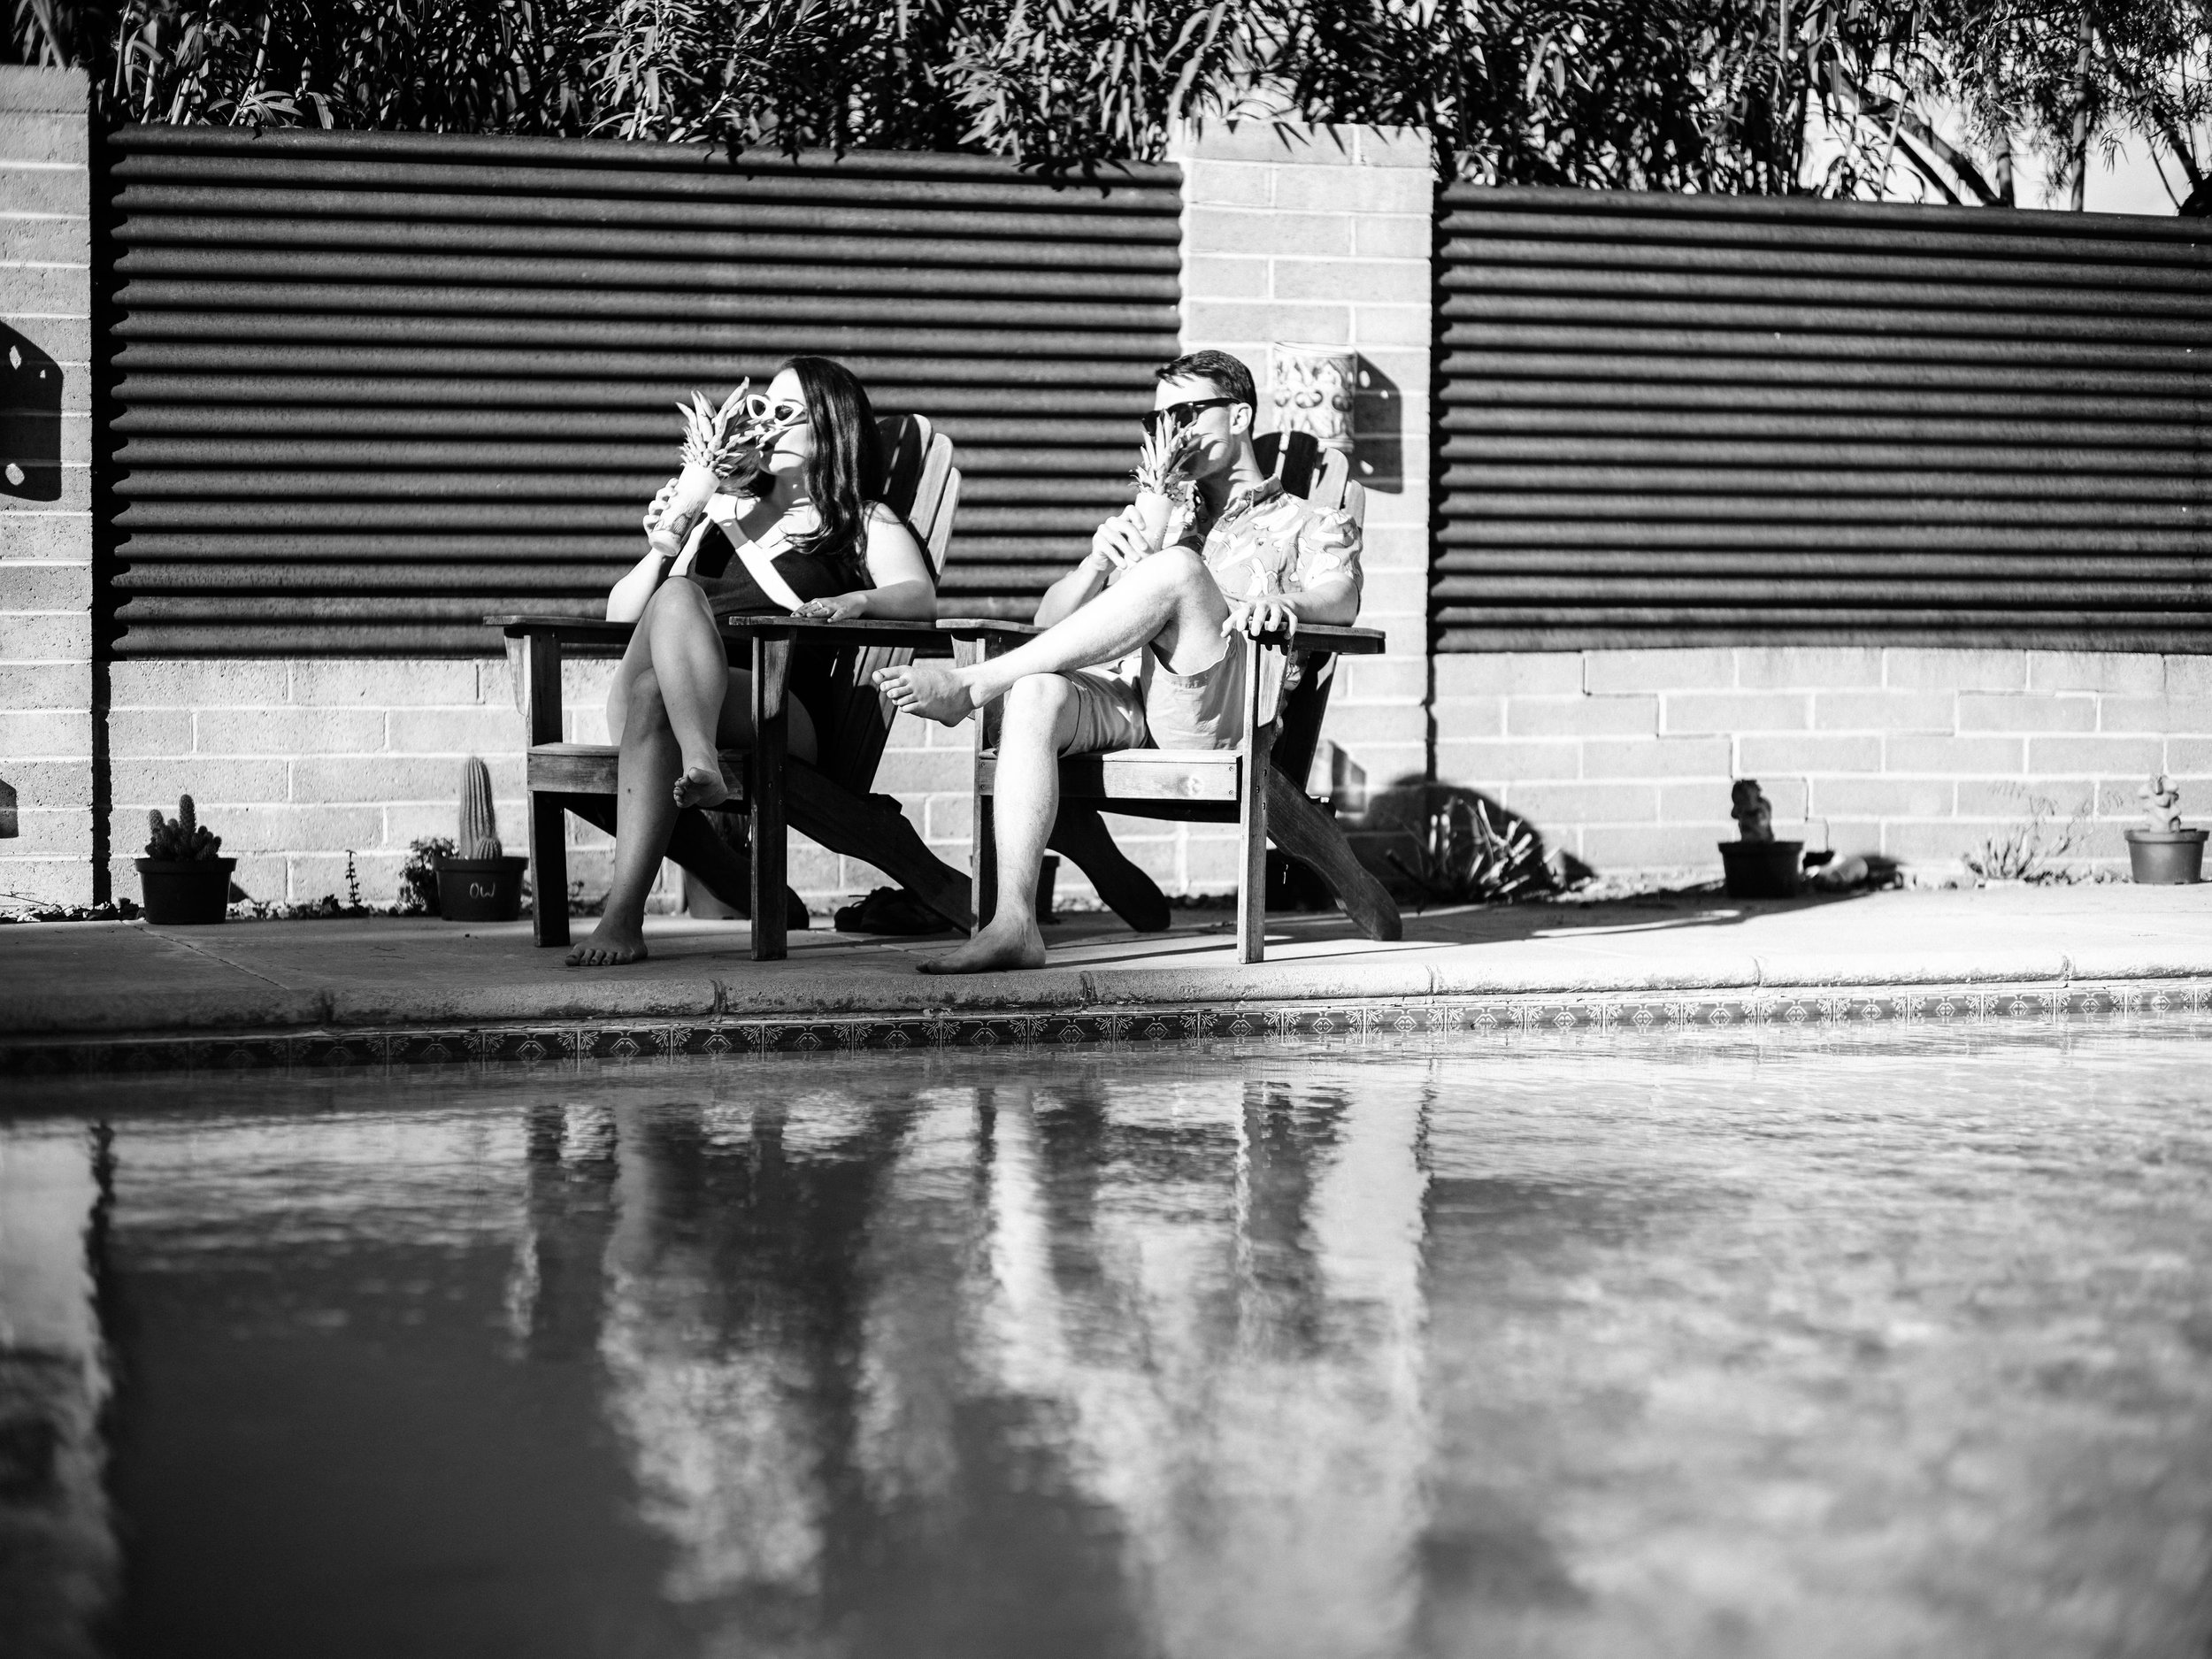 Andy-Shepard-Photography-Tucson-Pool-Party-56.jpg